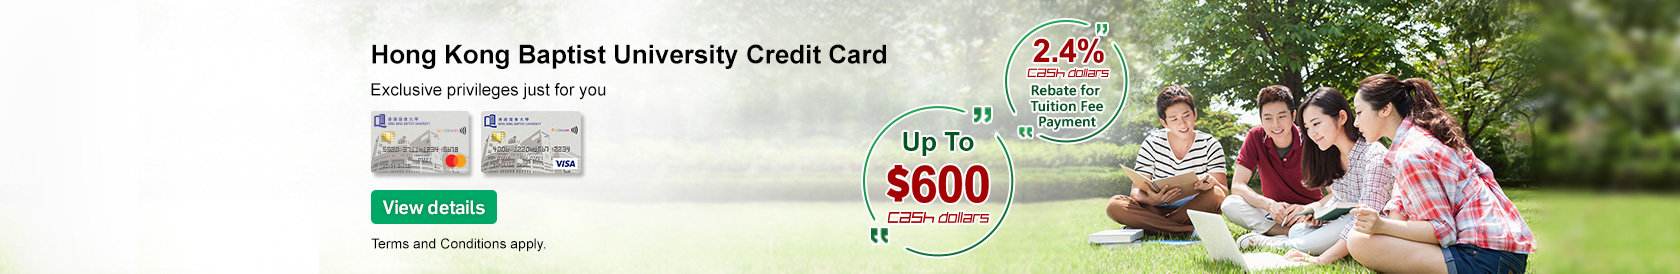 Hong Kong Baptist University Credit Card